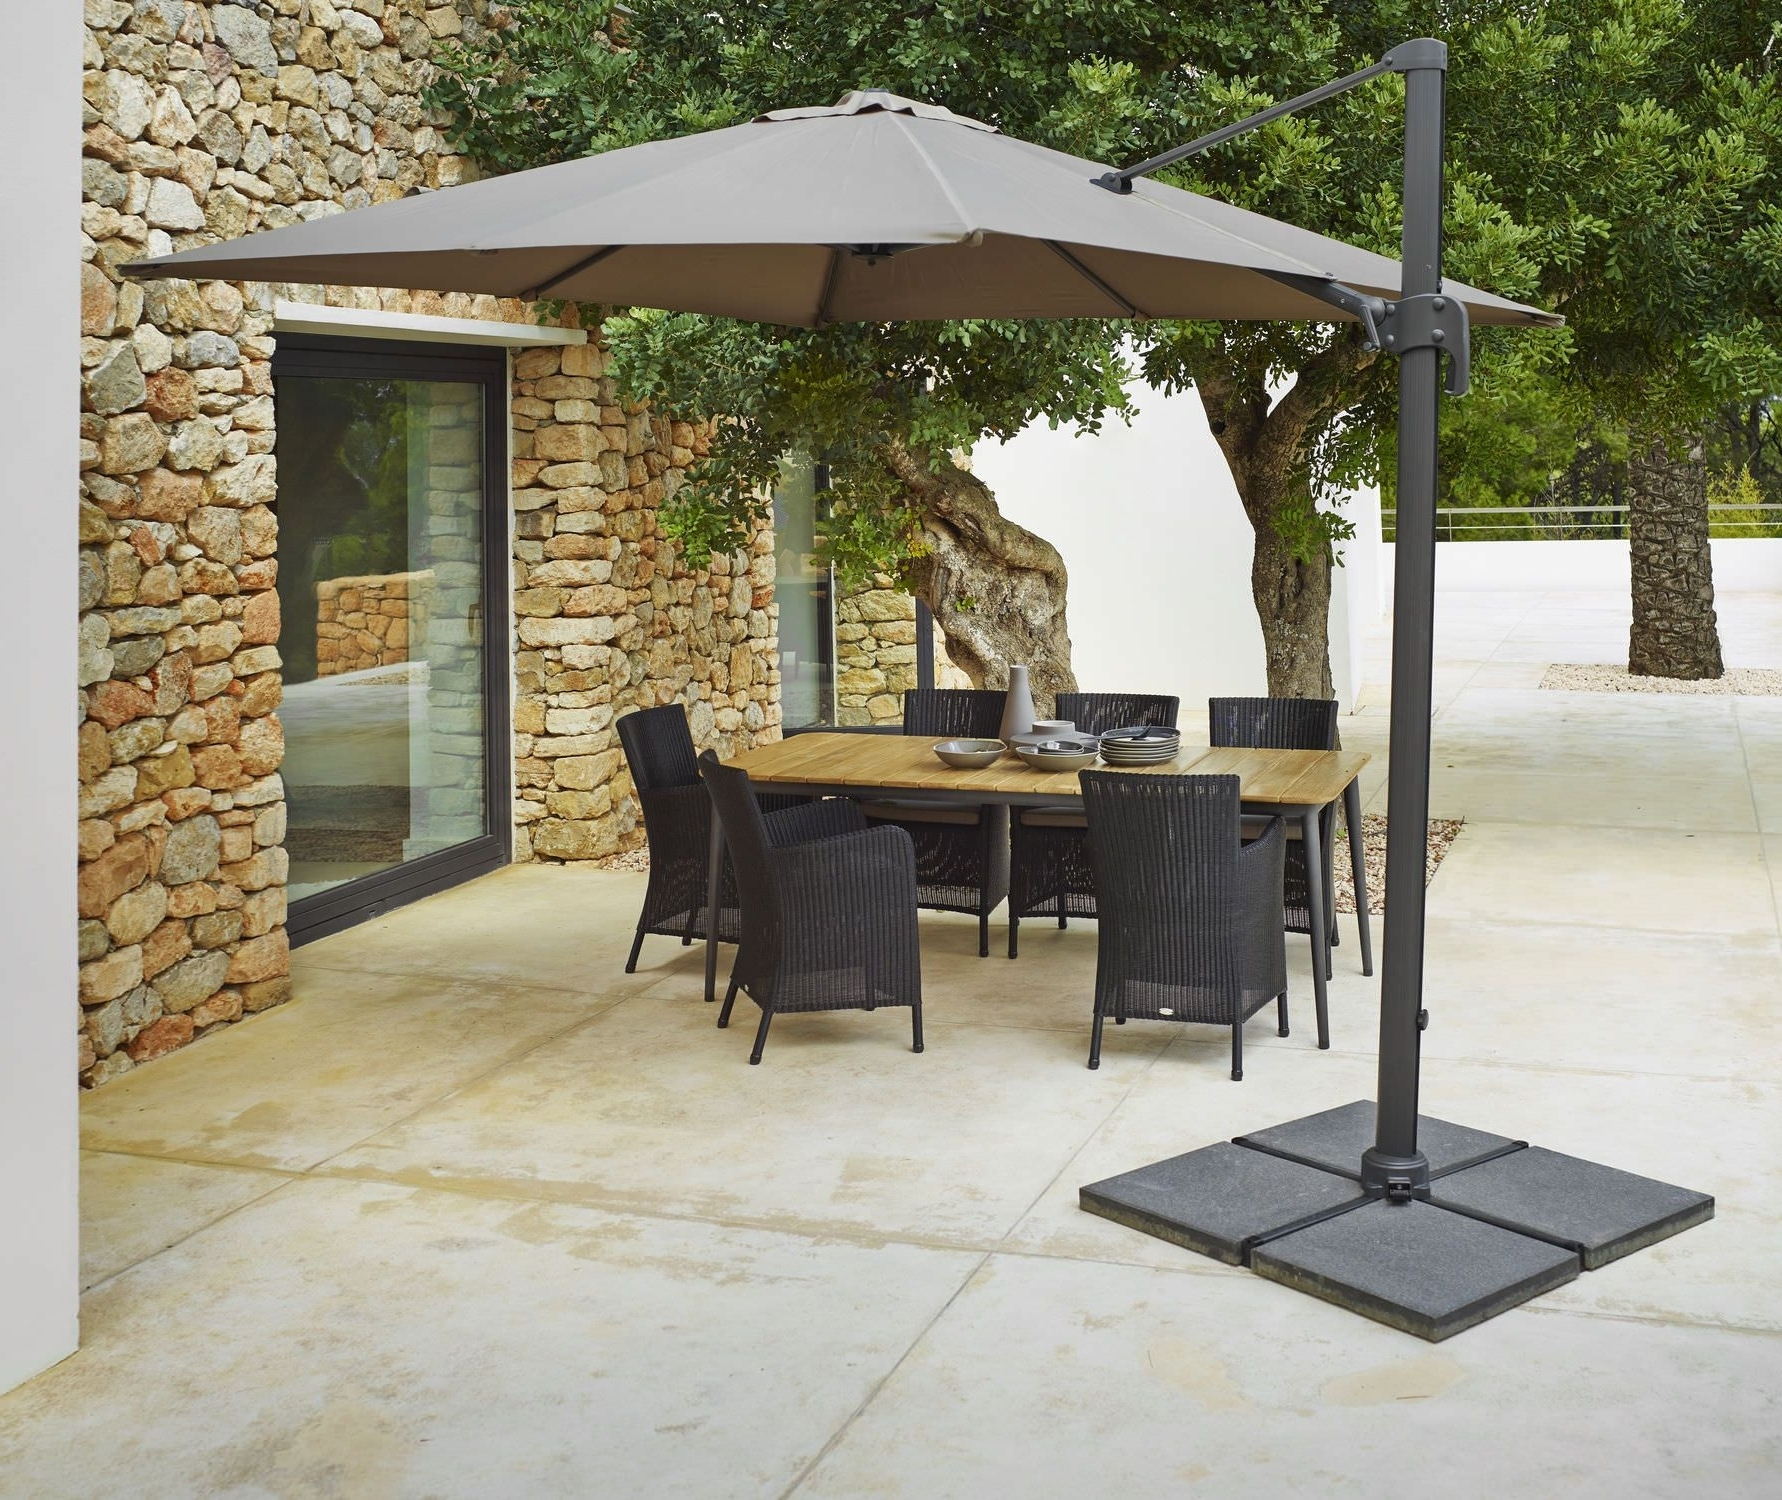 Outdoor Umbrella Bases Inspirational Fset Patio Umbrella Clearance Within Widely Used Patio Umbrellas And Bases (View 12 of 20)